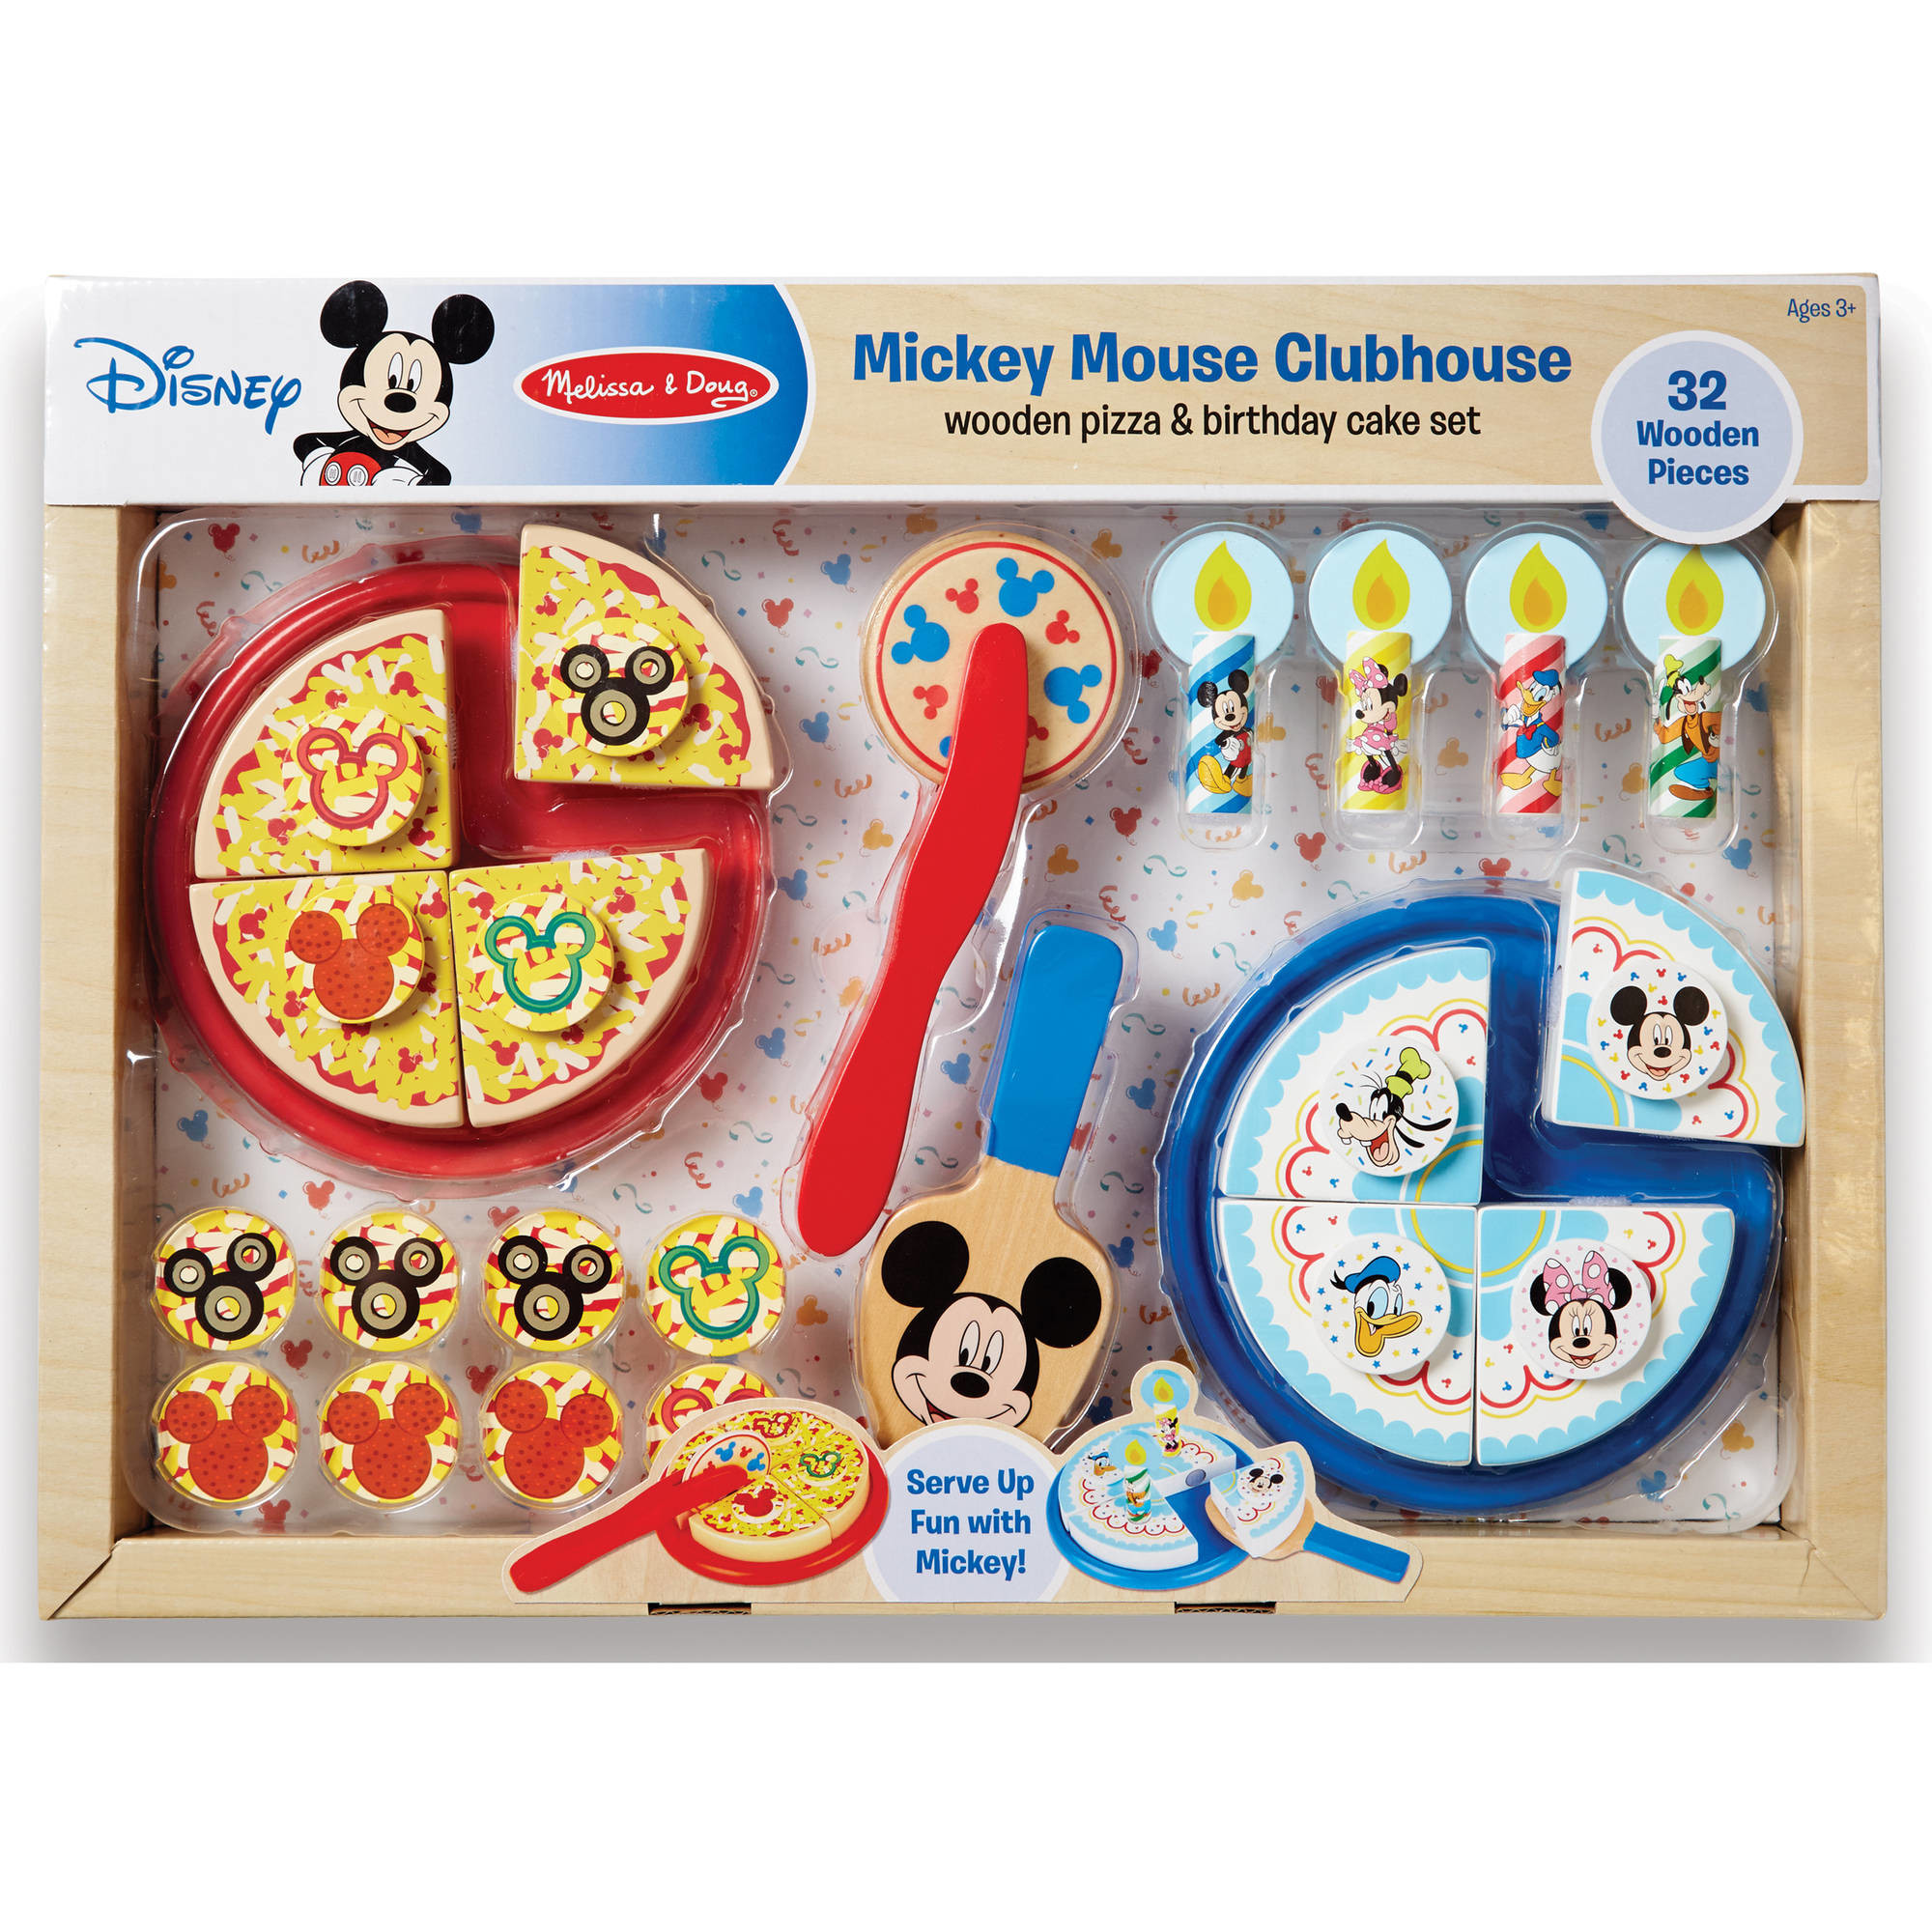 Astounding Mickey Mouse Cake Walmart 17 In Home Pictures With Mickey Mouse  Cake Walmart